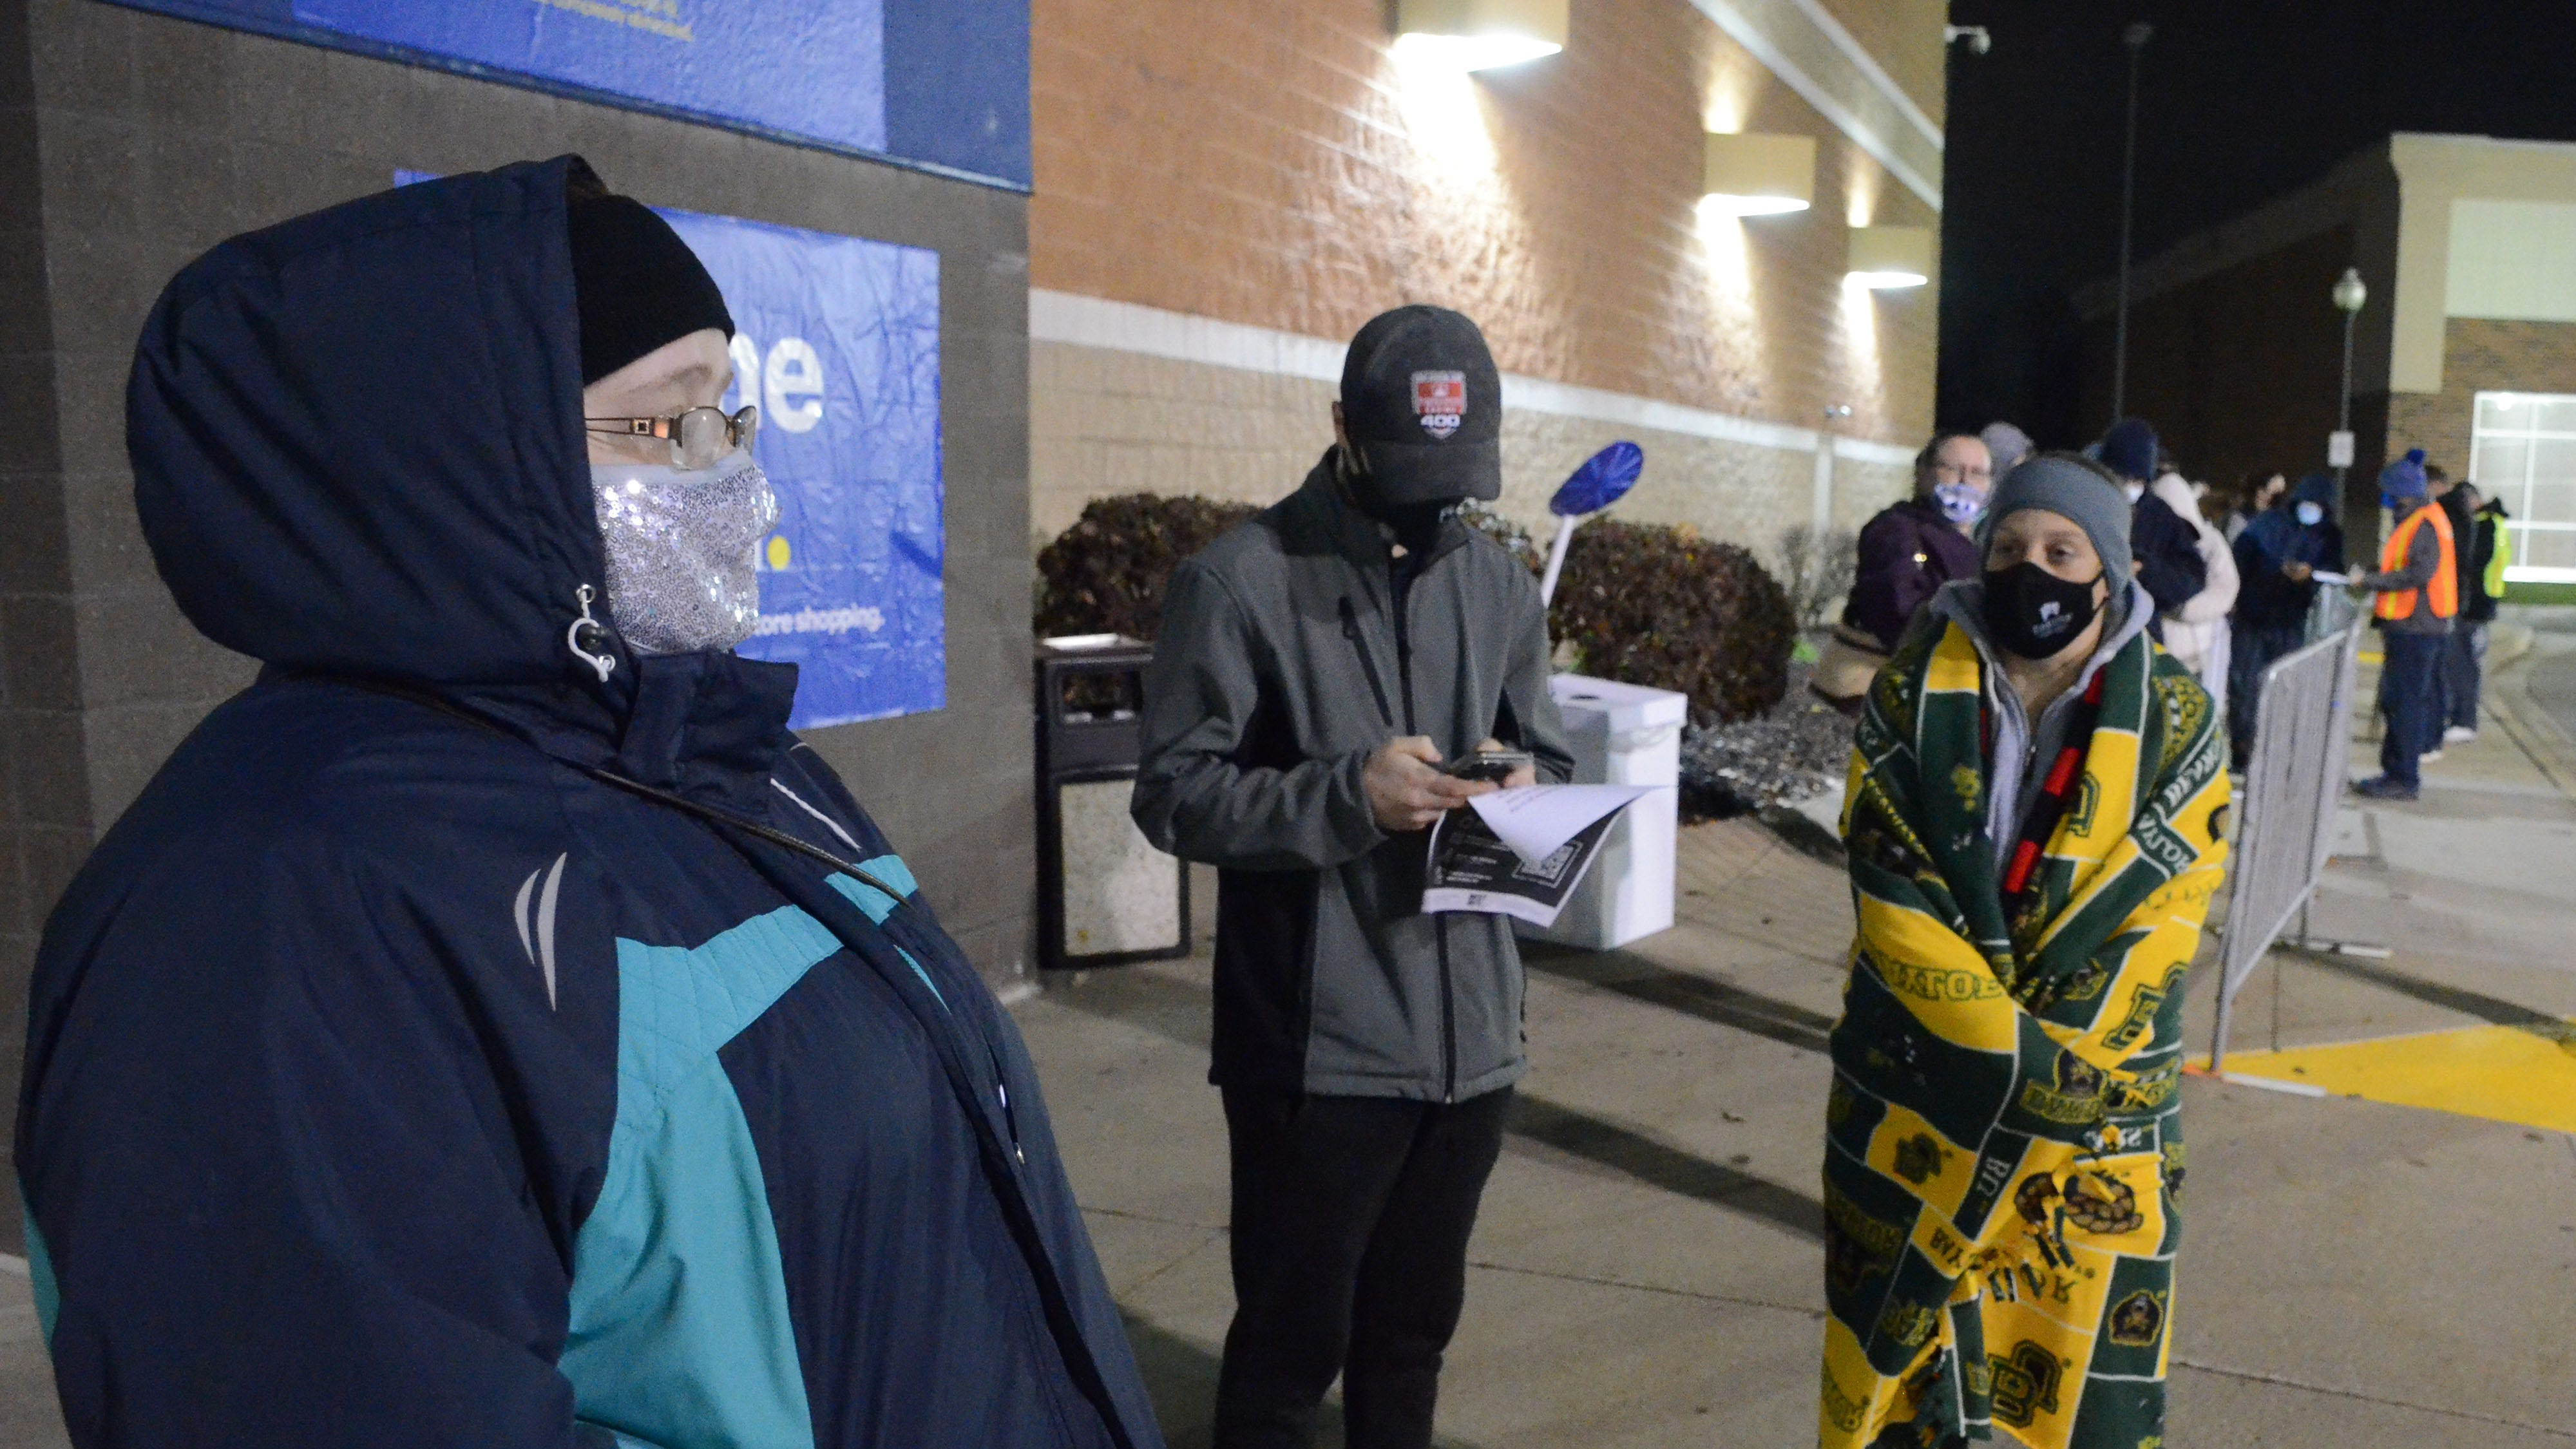 Shoppers wait in line and in the cold for Black Friday bargains